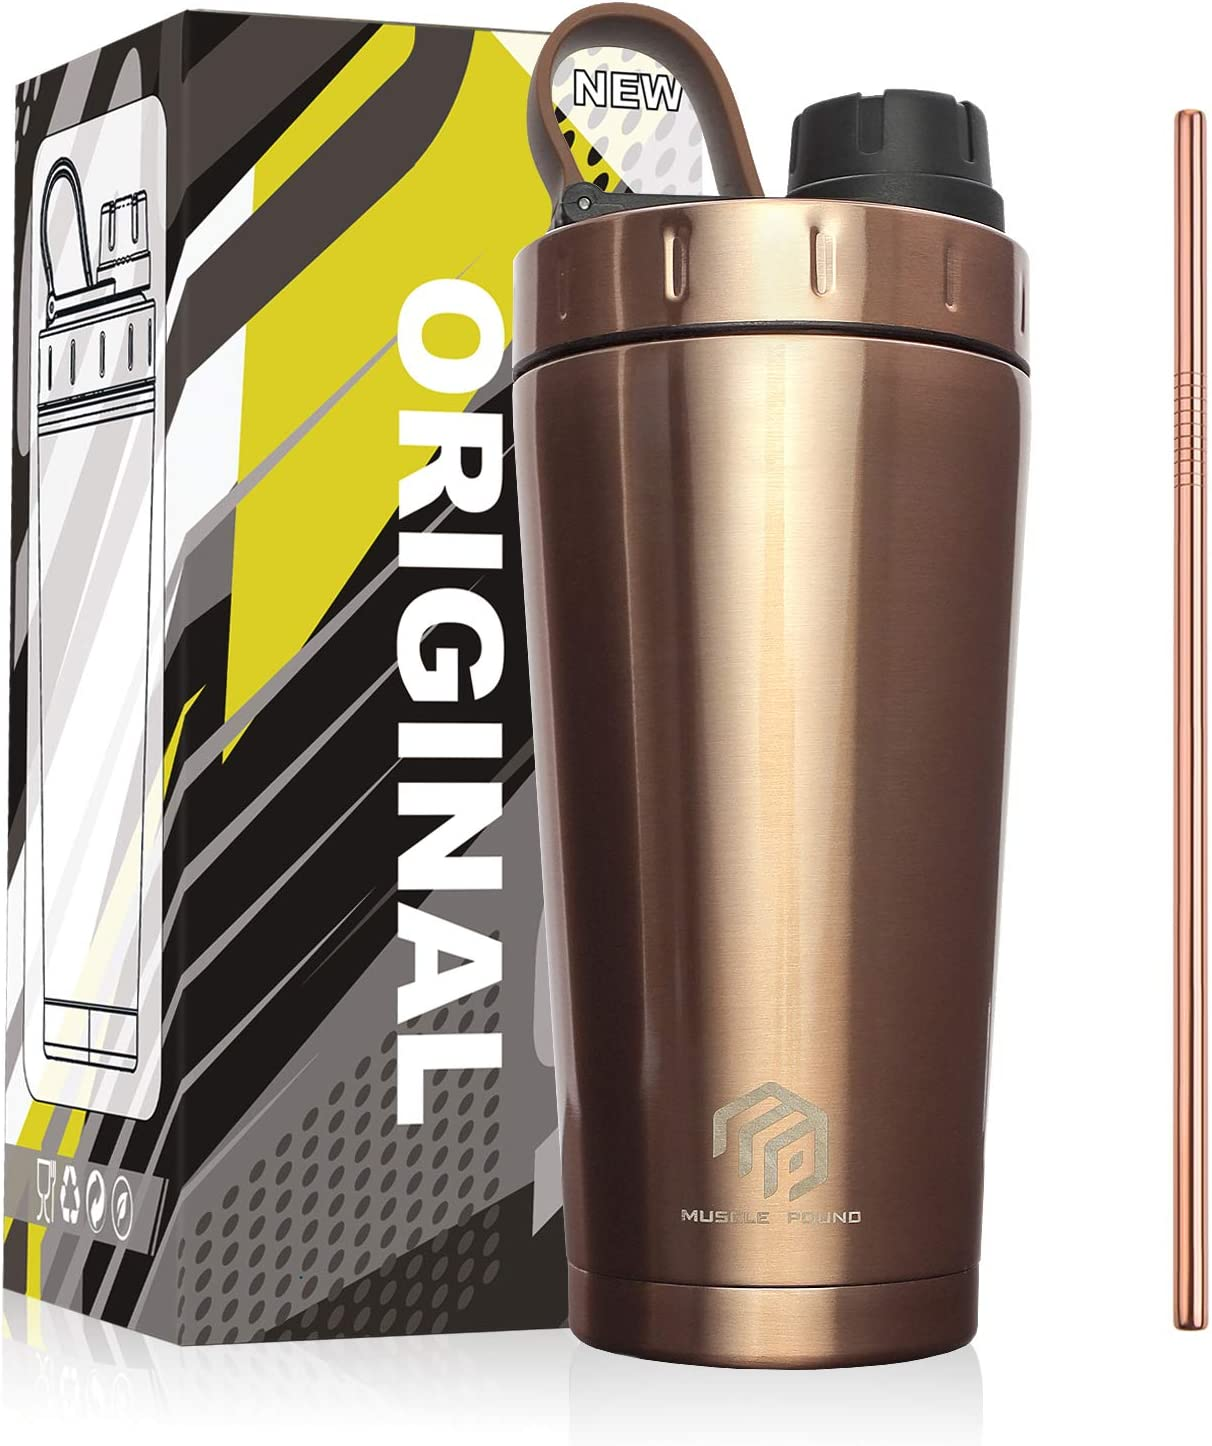 MUSCLE POUND Classic Insulated Stainless Steel Shaker Bottle For Protein Mixes, Double Wall, Leakproof, BPA Free, 20oz (Copper/Straw)